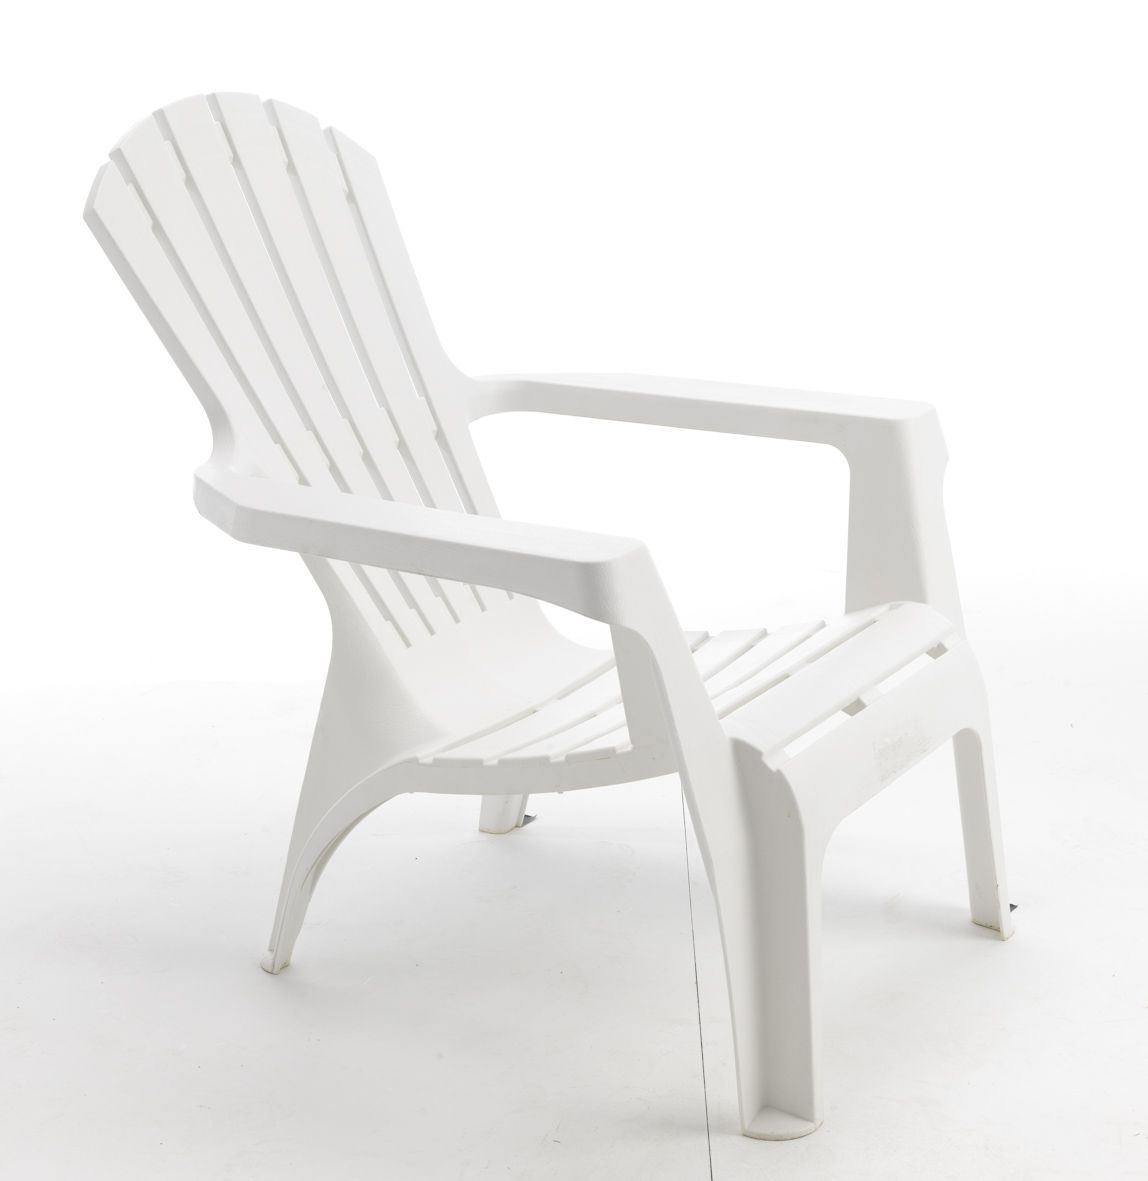 fauteuil de jardin adirondack blanc wilsa garden. Black Bedroom Furniture Sets. Home Design Ideas